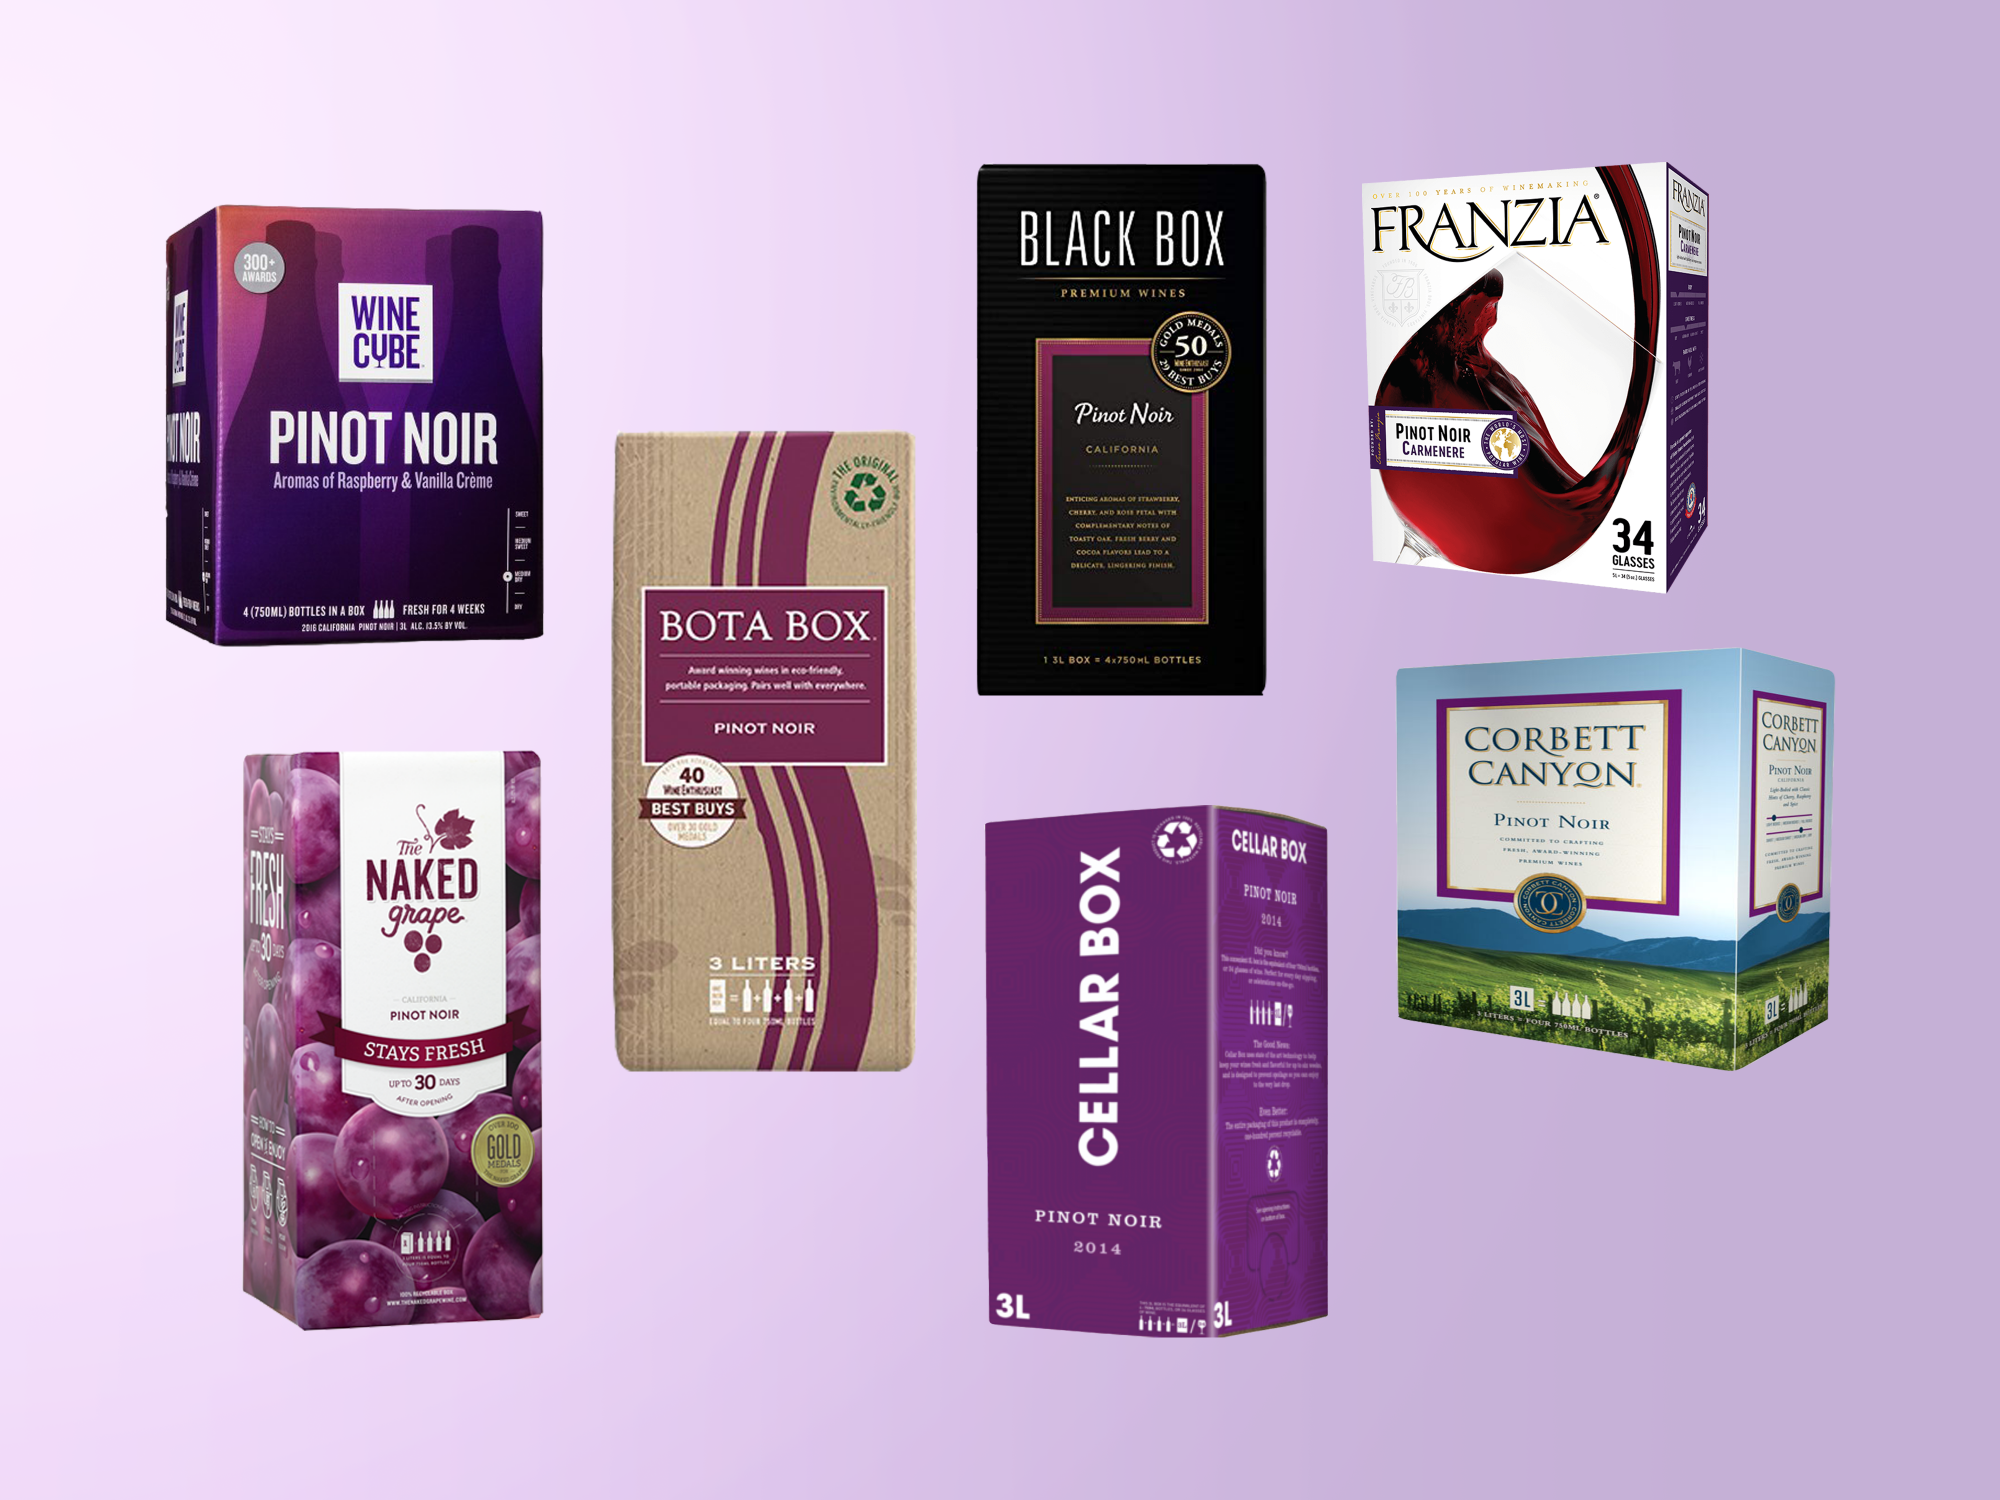 We Tried Every Boxed Pinot Noir We Could Find and This Was the Best One